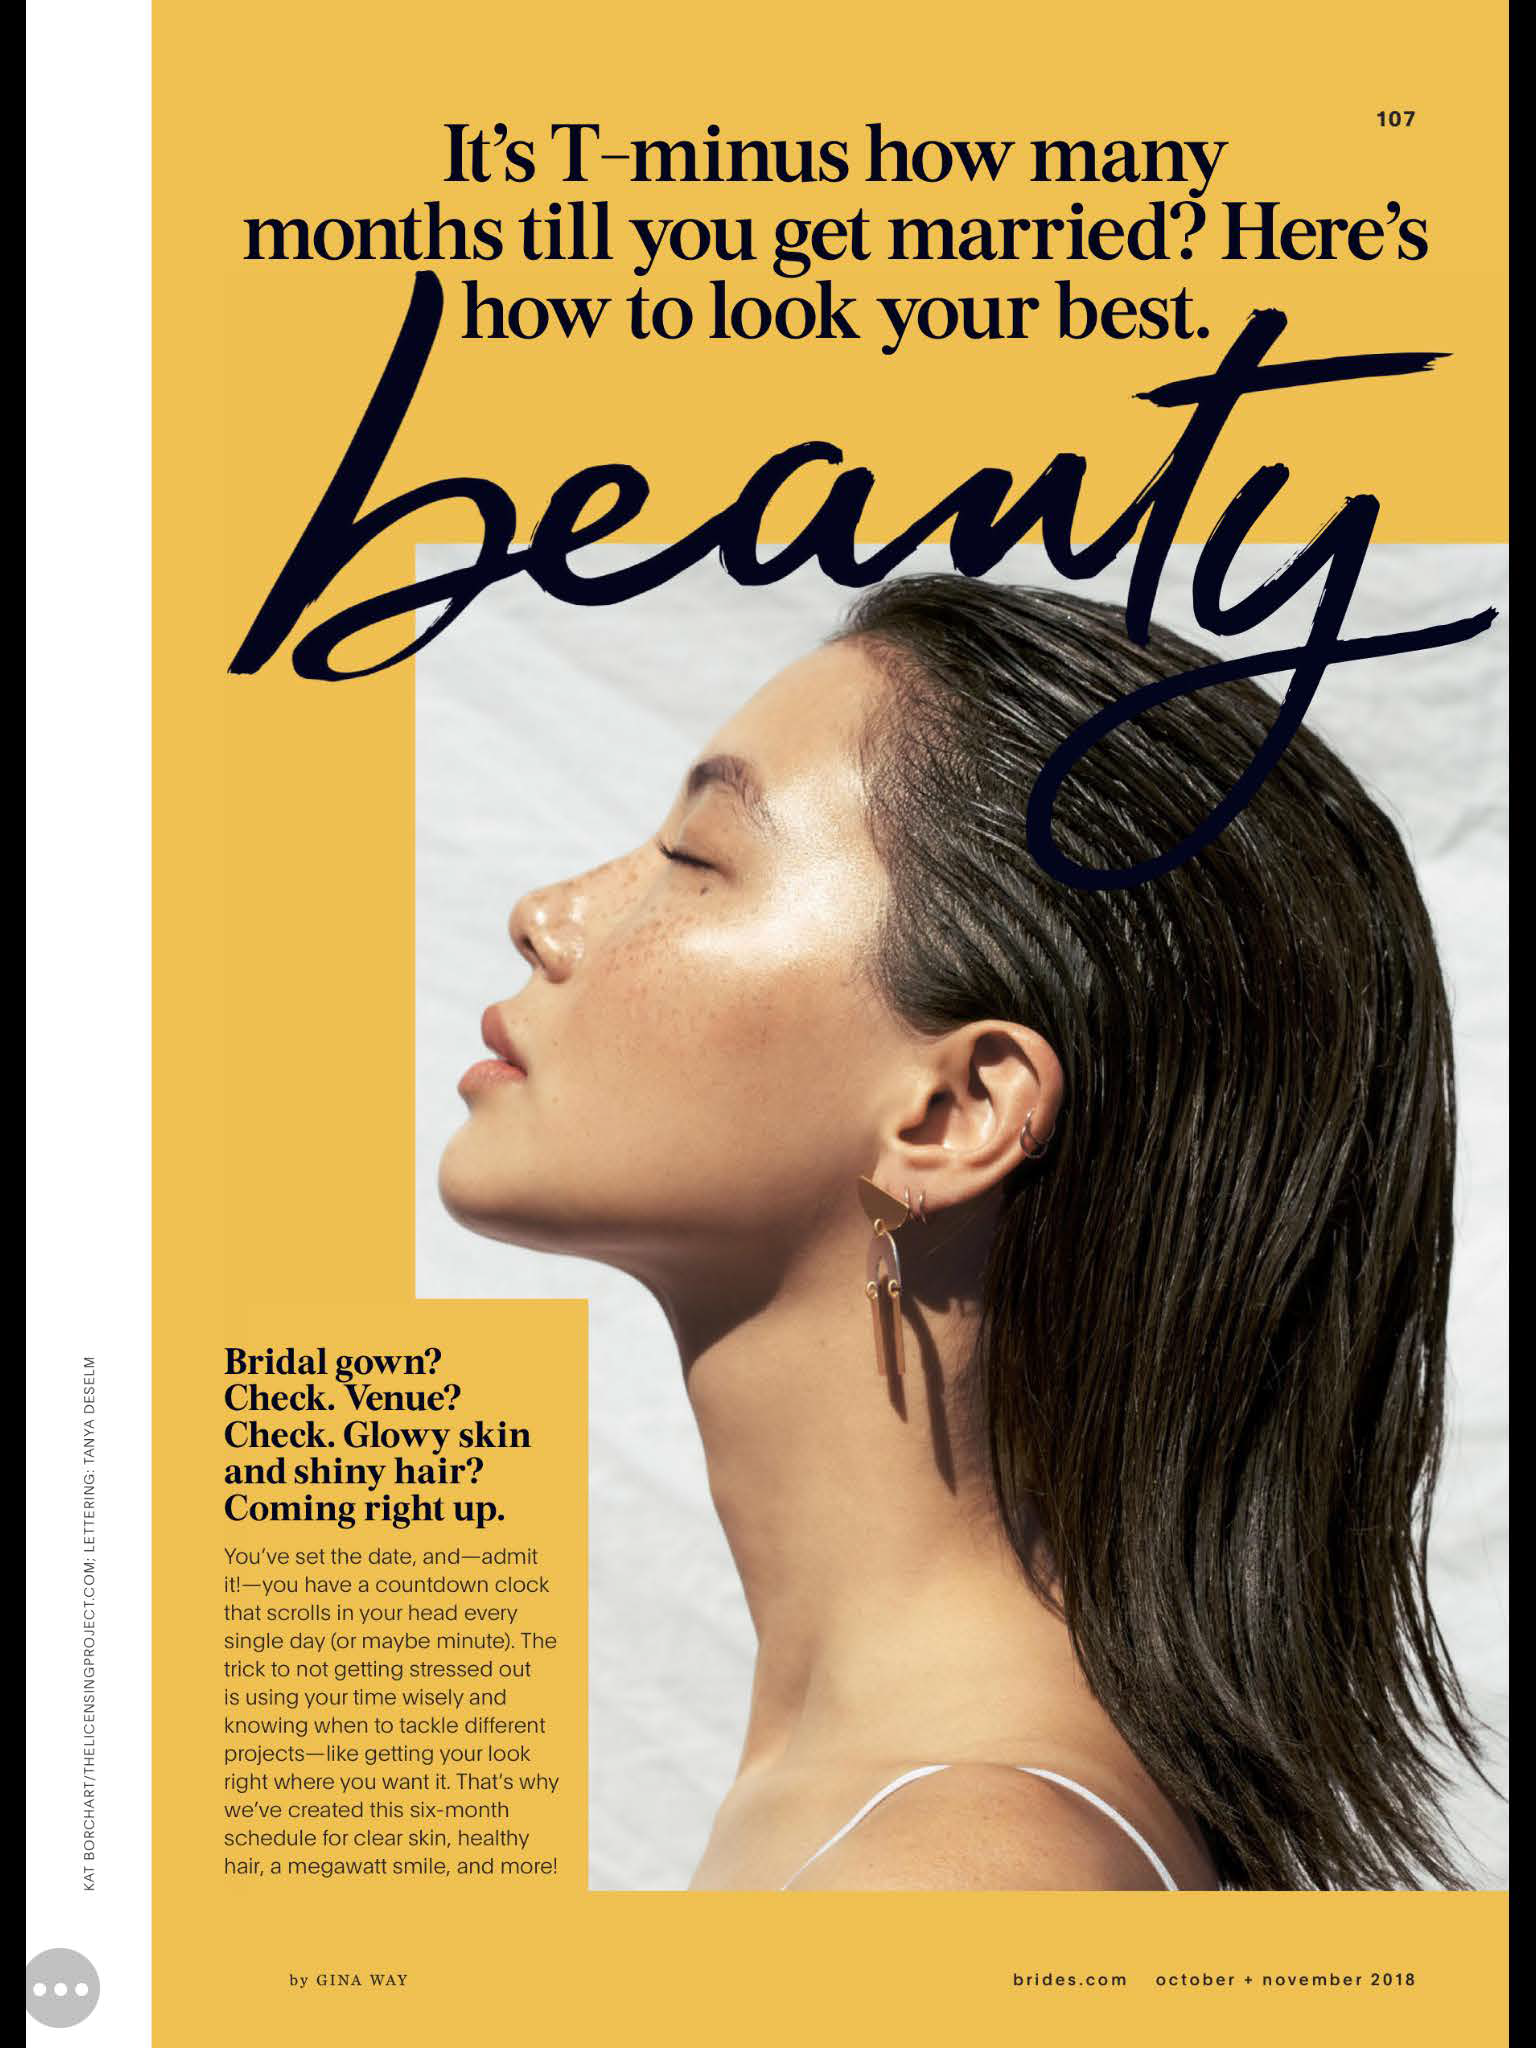 """Around six months before your wedding is a good time to start looking into skin rejuvenation. Small but impactful changes can be made using injectable fillers, """"you want to be sure you're happy with the results, if you don't love it, fillers can be dissolved with and [eraser] enzyme.""""  Click  here  to read the full article"""